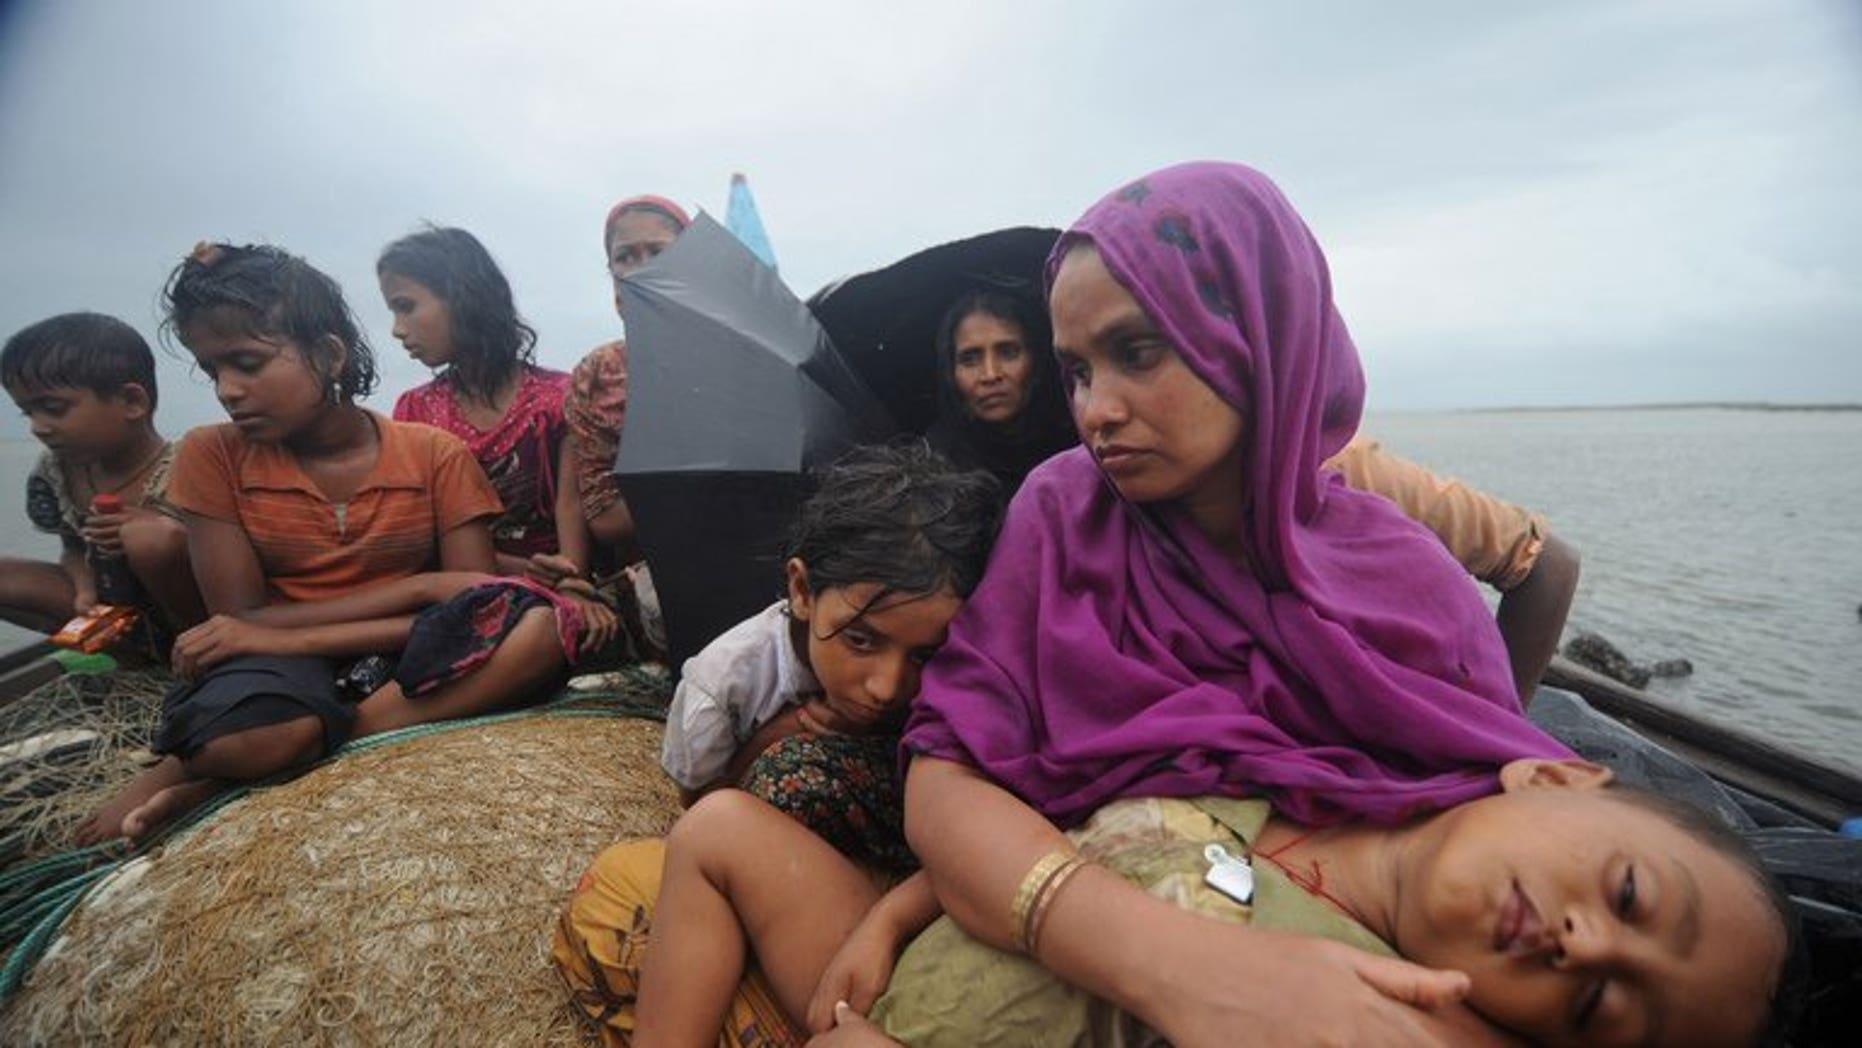 This picture taken on June 13, 2012 shows Rohingya Muslims, trying to cross the Naf river into Bangladesh to escape sectarian violence in Myanmar. Myanmar officials say six Buddhist men will face trial this month over the lynching of 10 Muslim bus passengers as sectarian unrest convulsed Rakhine state in June 2012.